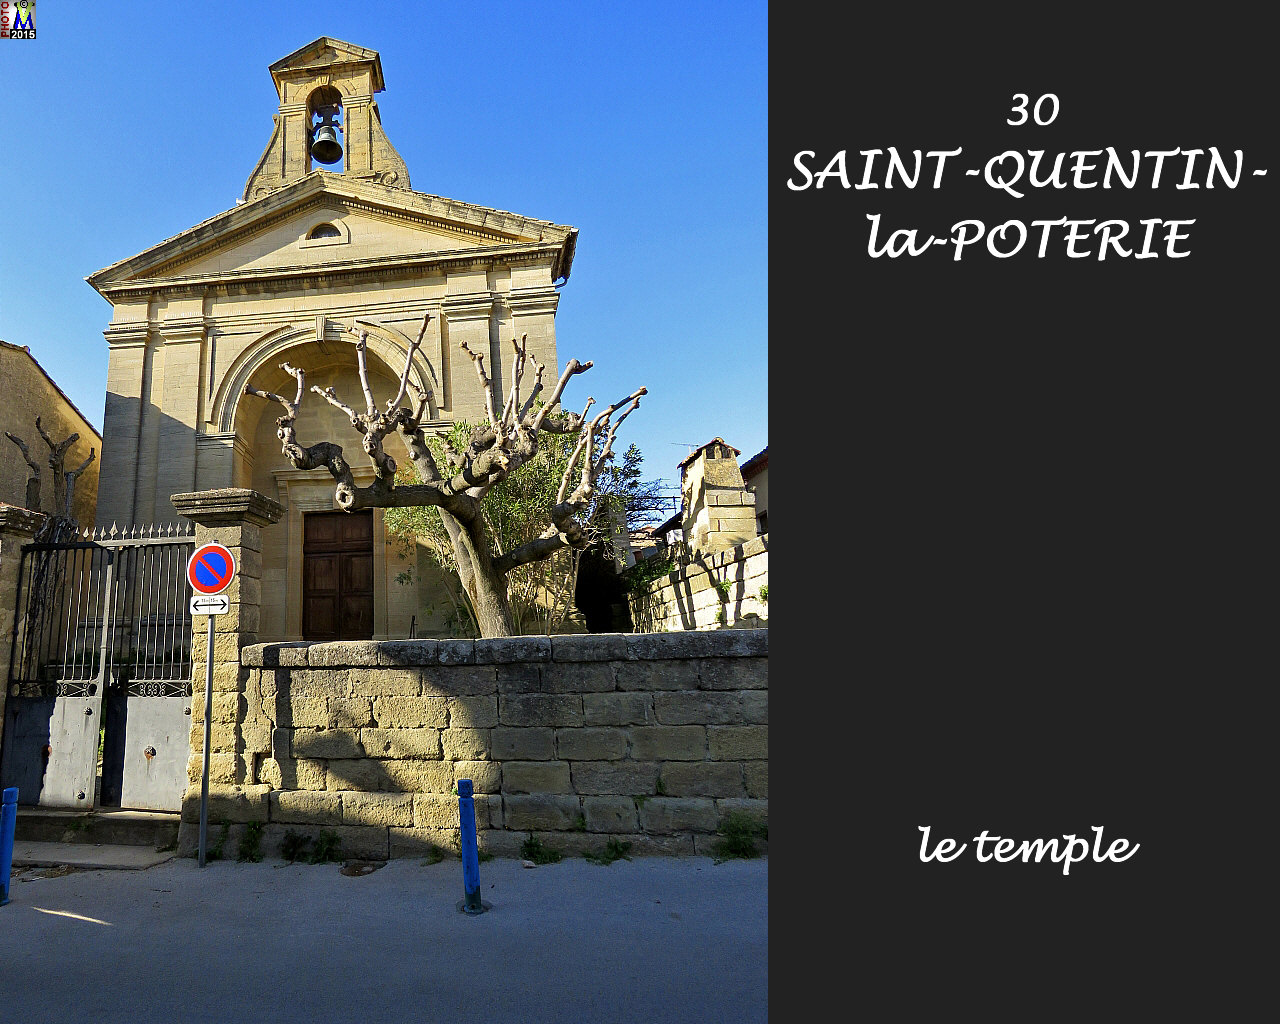 30StQUENTIN-POTERIE_temple_100.jpg